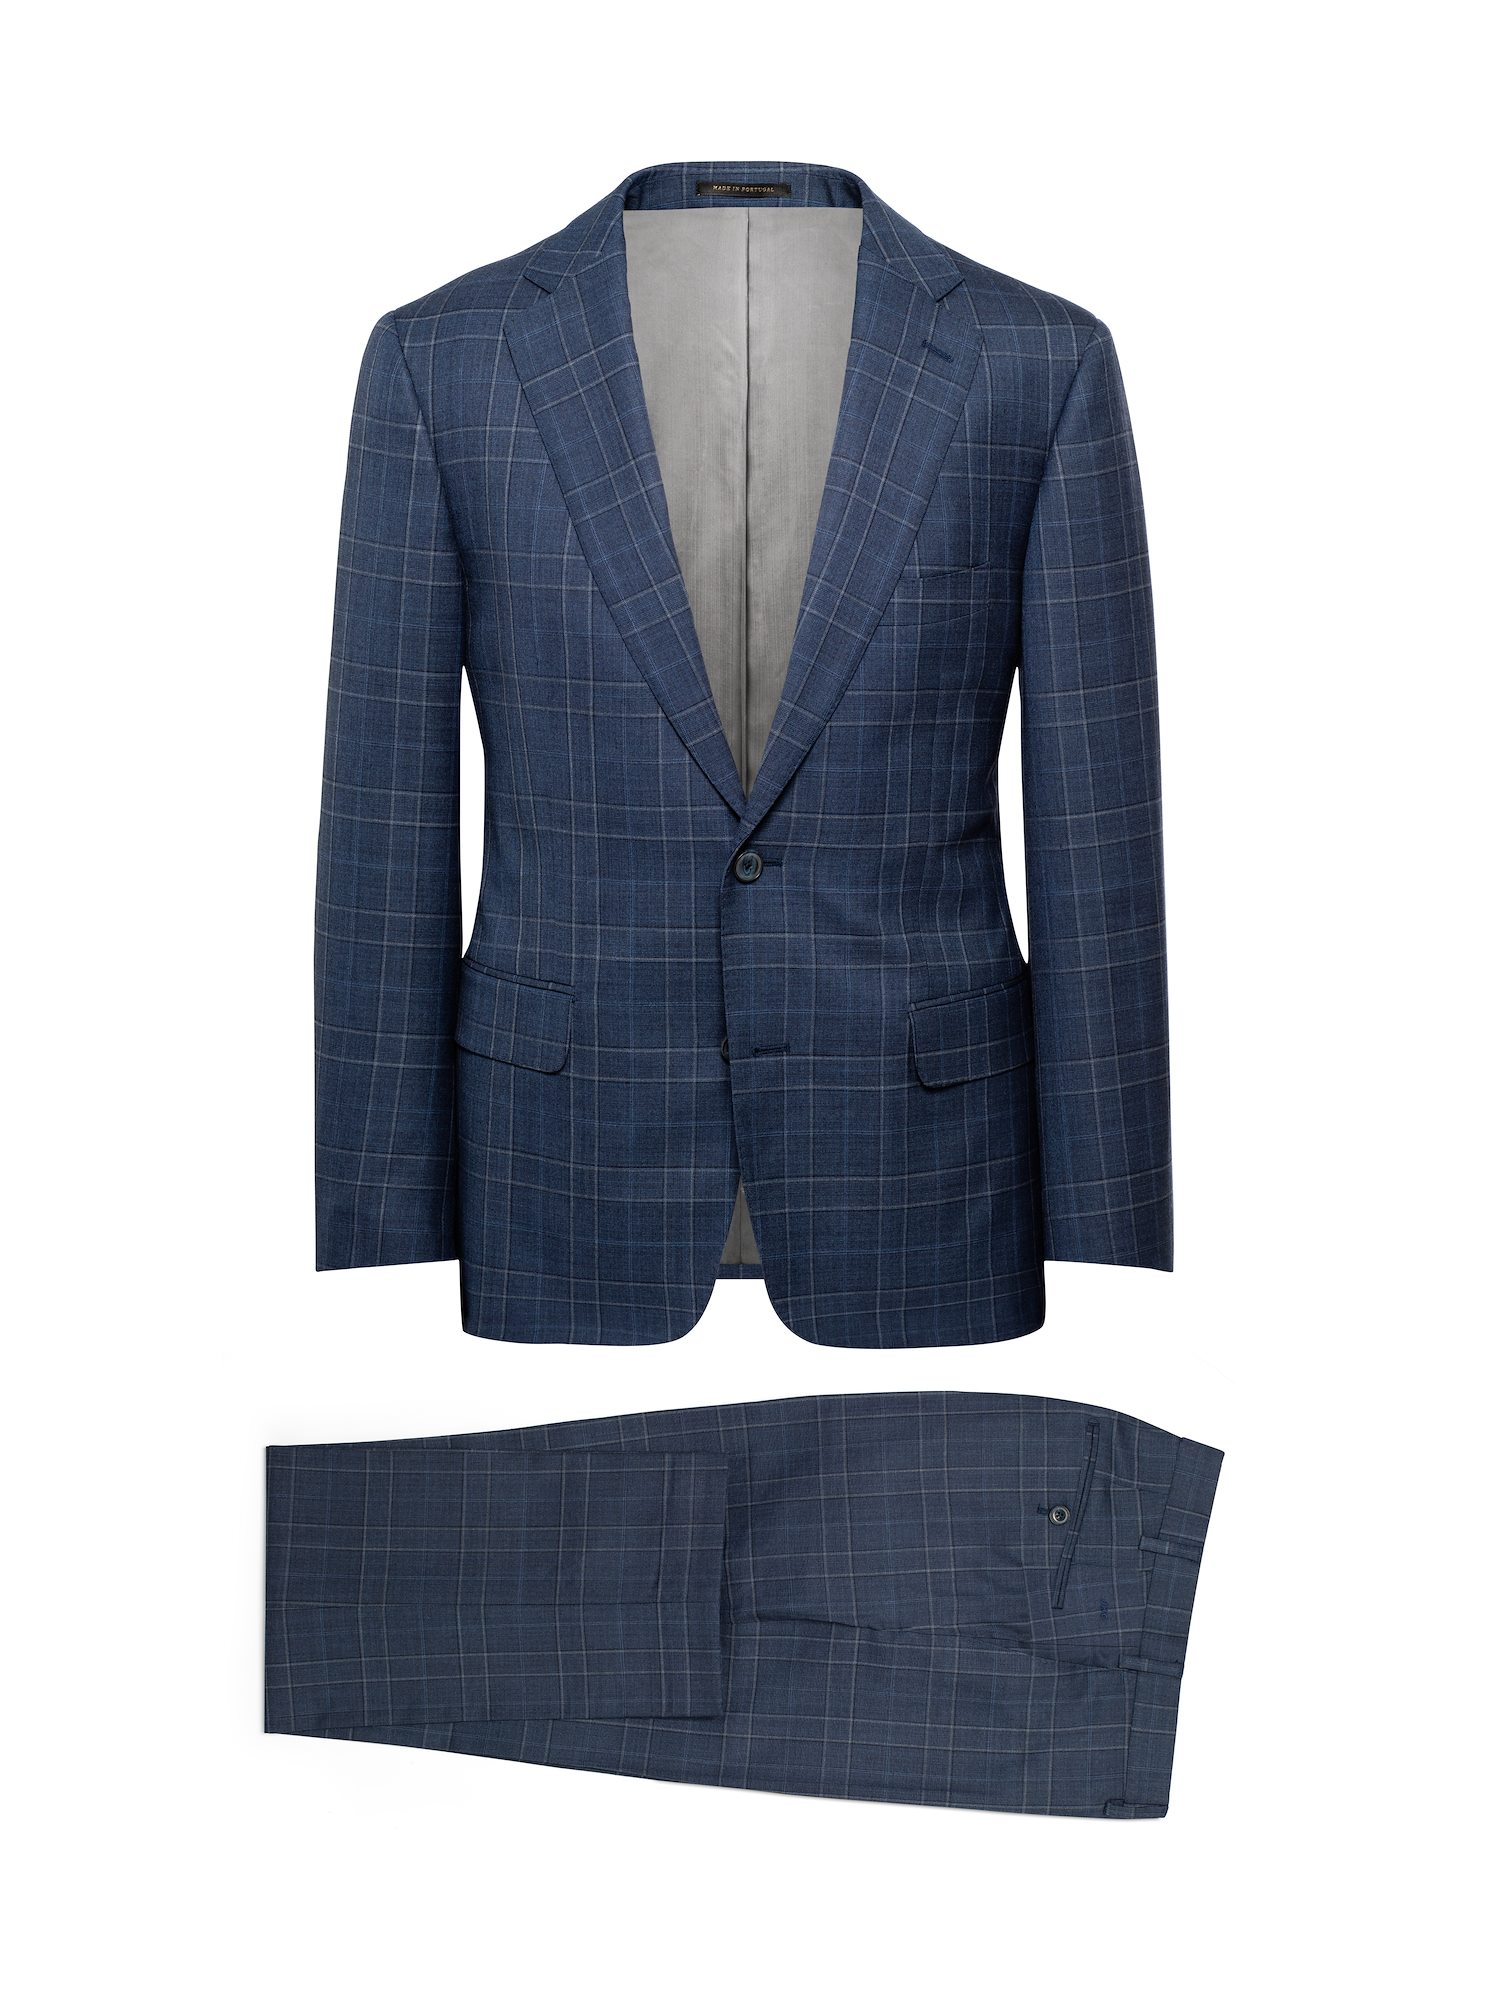 J. Hilburn Navy-Grey Revenge Check Suit - Get a MTM suit that makes you feel like a king. If you want to look how much you're worth, this is the pick.